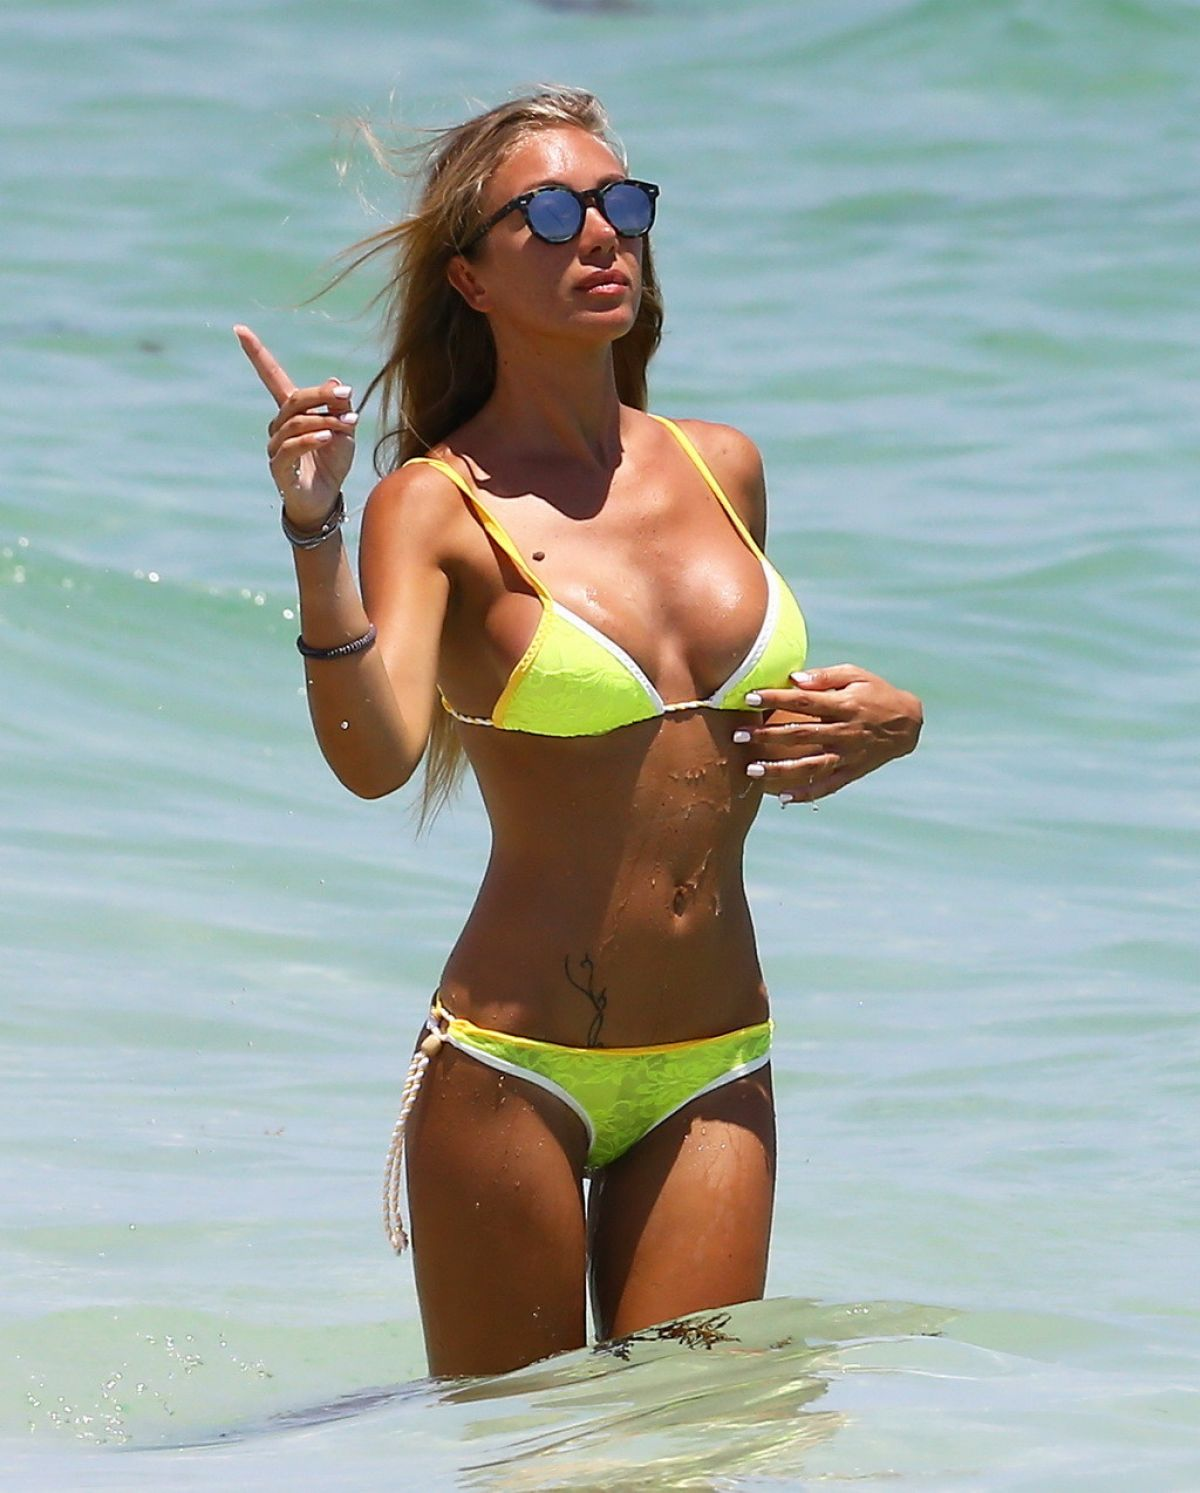 Laura Cremaschi In a bikini in the water in Miami